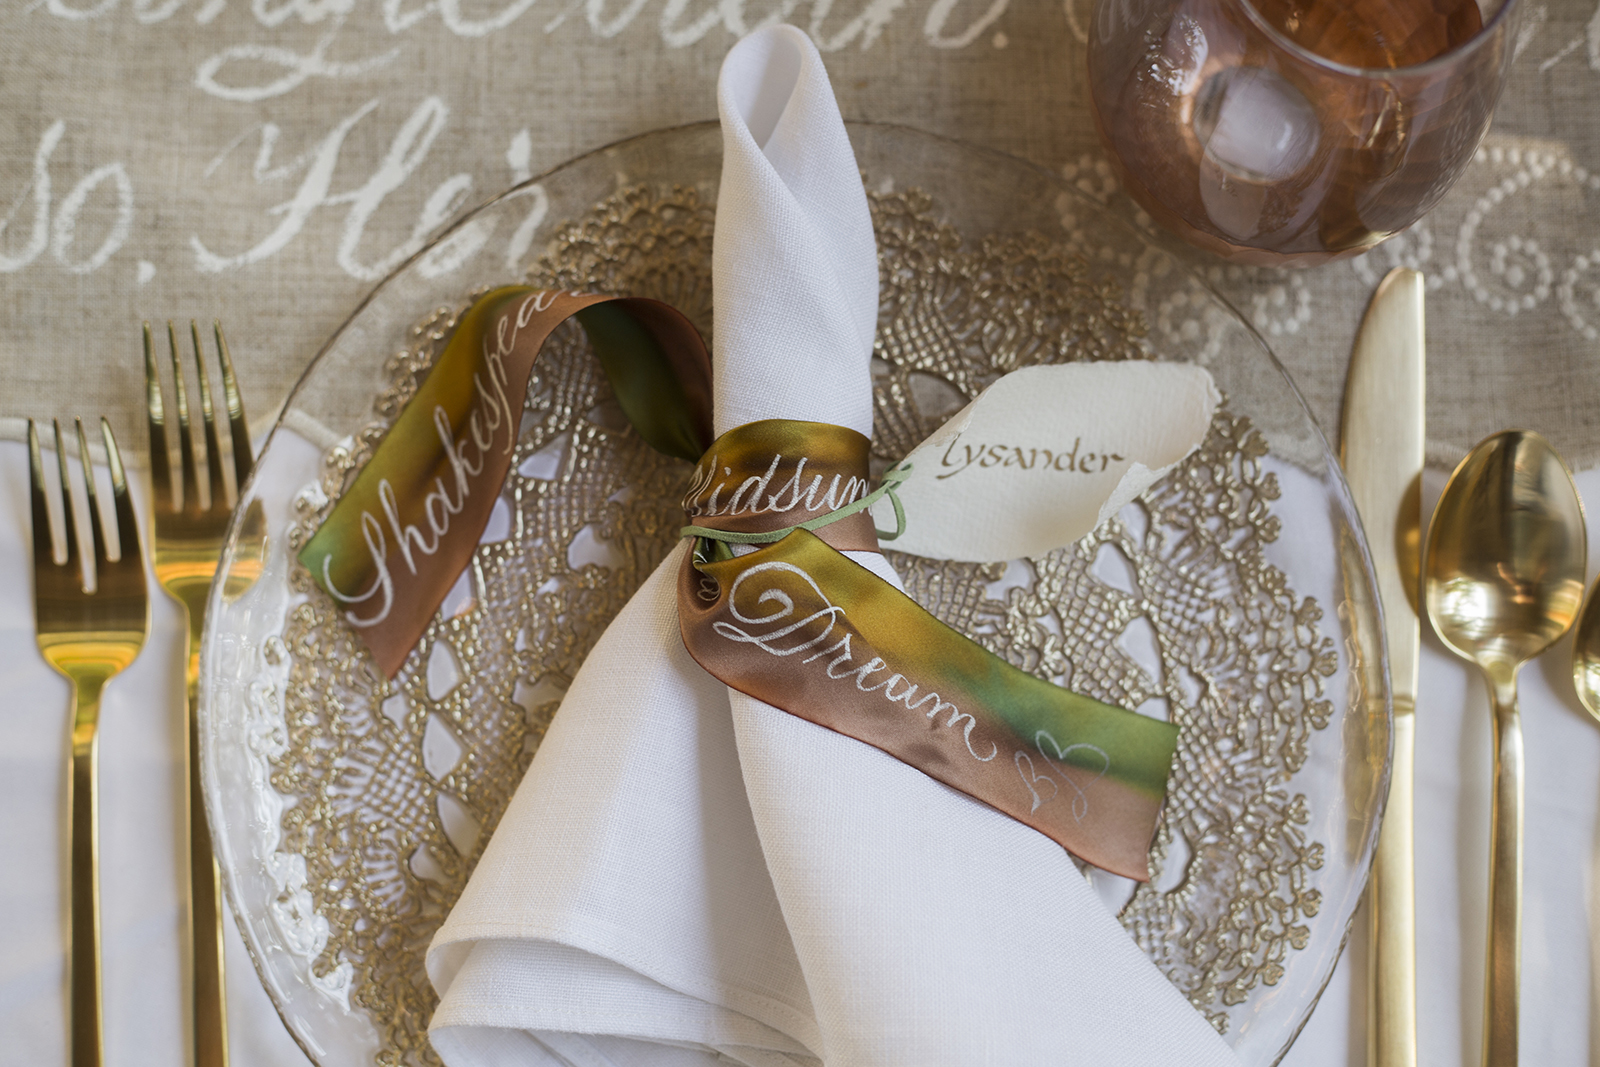 Midsummer Night's Dream inspired wedding shoot // historic Carolingian calligraphy in rose gold on hand-made paper place card scrolls // hand-painted silk ribbons with calligraphy // design and calligraphy by Chavelli www.chavelli.com // photography by Rebecca Jeanson www.rjimagery.com